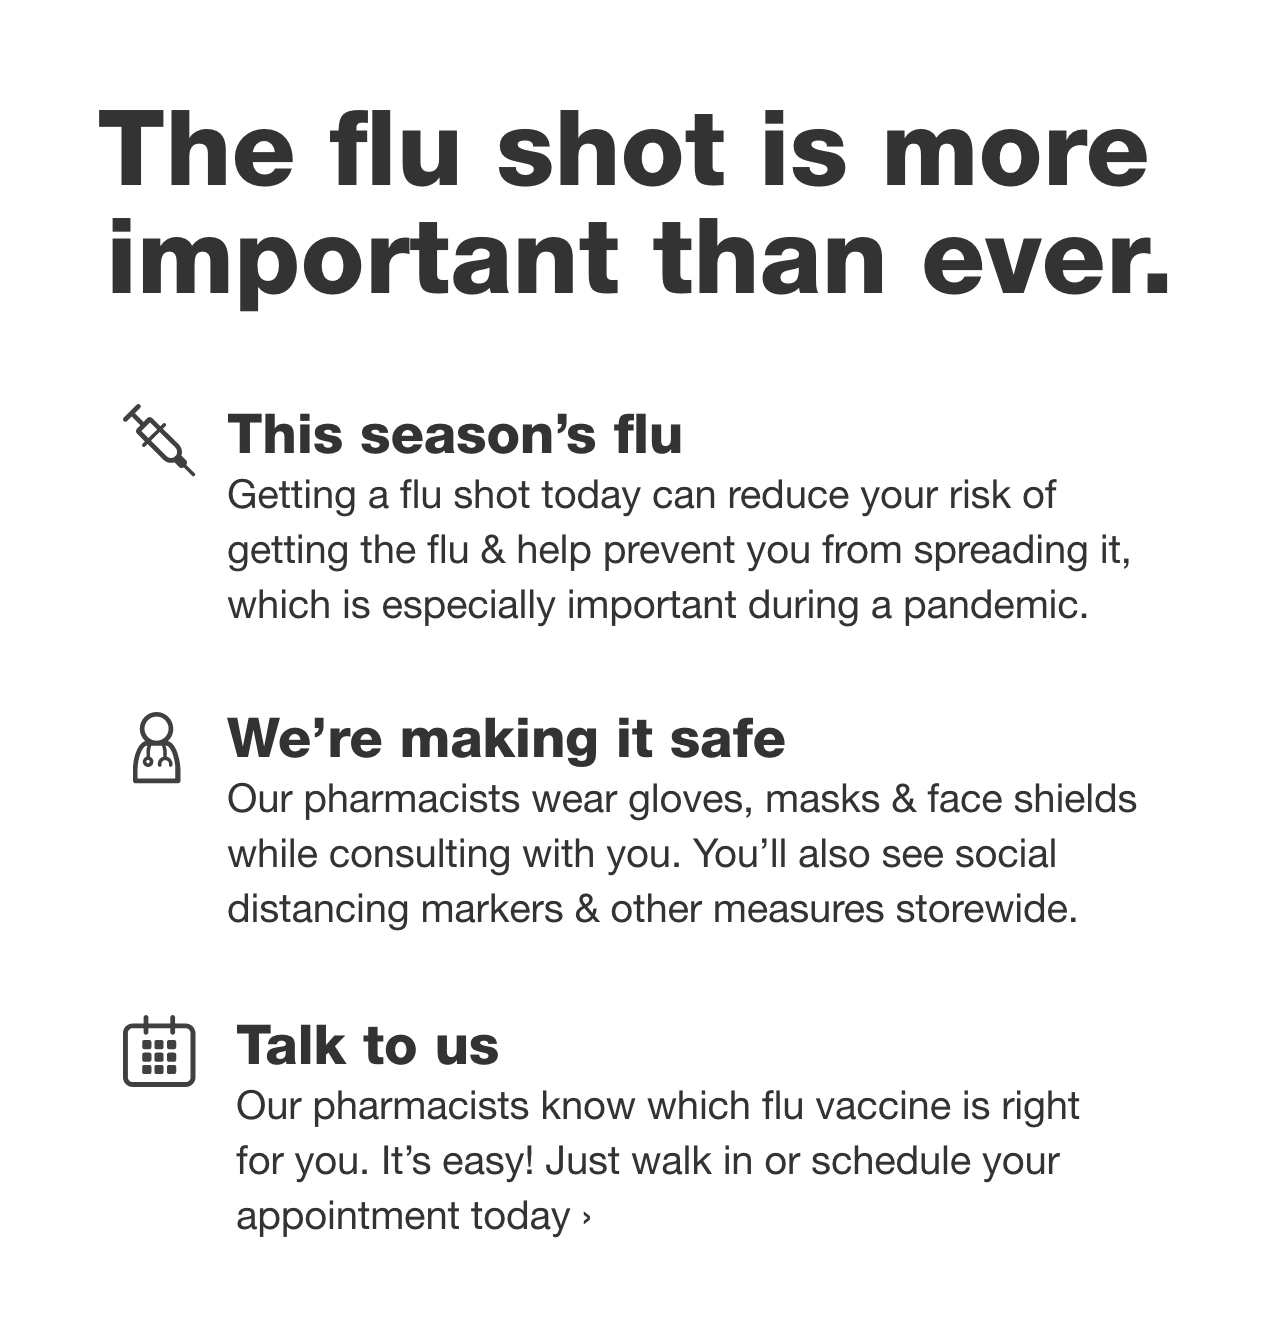 The flu shot is more important than ever. -This season's flu. Getting a flu shot today can reduce your risk of getting the flu & help prevent you from spreading it, which is especially important during a pandemic. -We're making it safe. Our pharmacists wear gloves, masks & face shields while consulting with you. You'll also see social distancing markers & other measures storewide. -Talk to us. Our pharmacists know which flu vaccine is right for you. It's easy! Just walk in or schedule your appointment today.